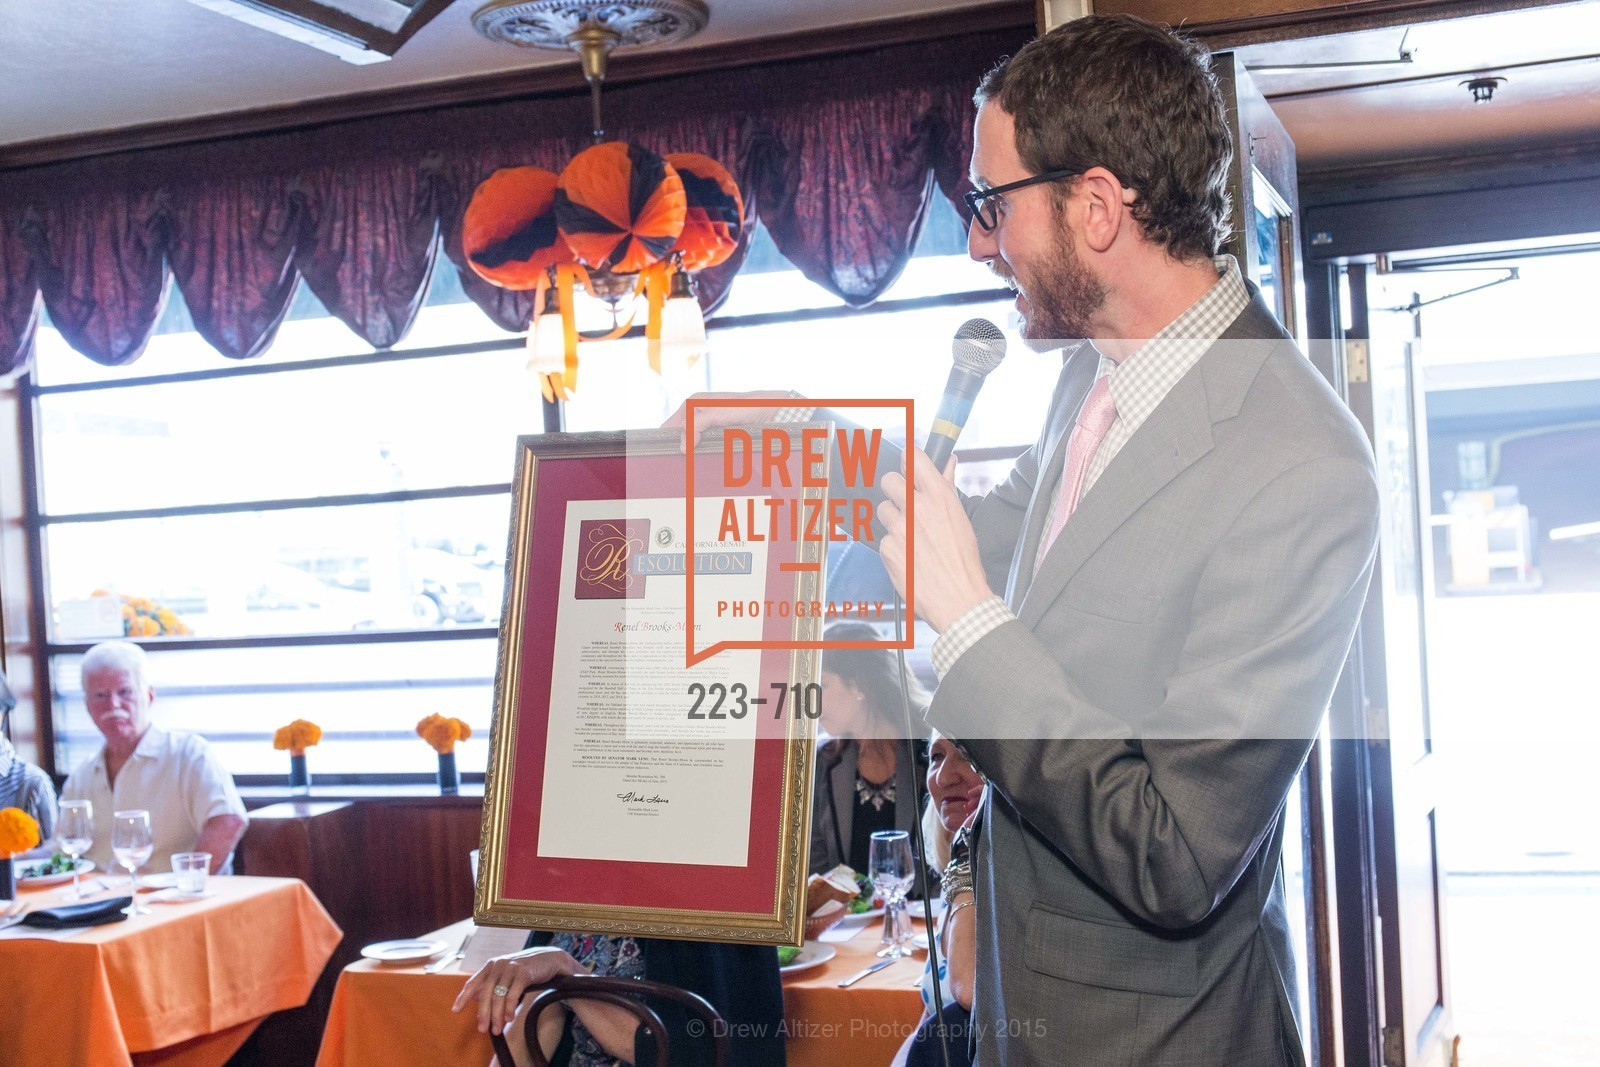 Scott Wiener, 3-RING LUNCH CELEBRATION Honoring RENEL BROOKS-MOON, US, June 8th, 2015,Drew Altizer, Drew Altizer Photography, full-service agency, private events, San Francisco photographer, photographer california